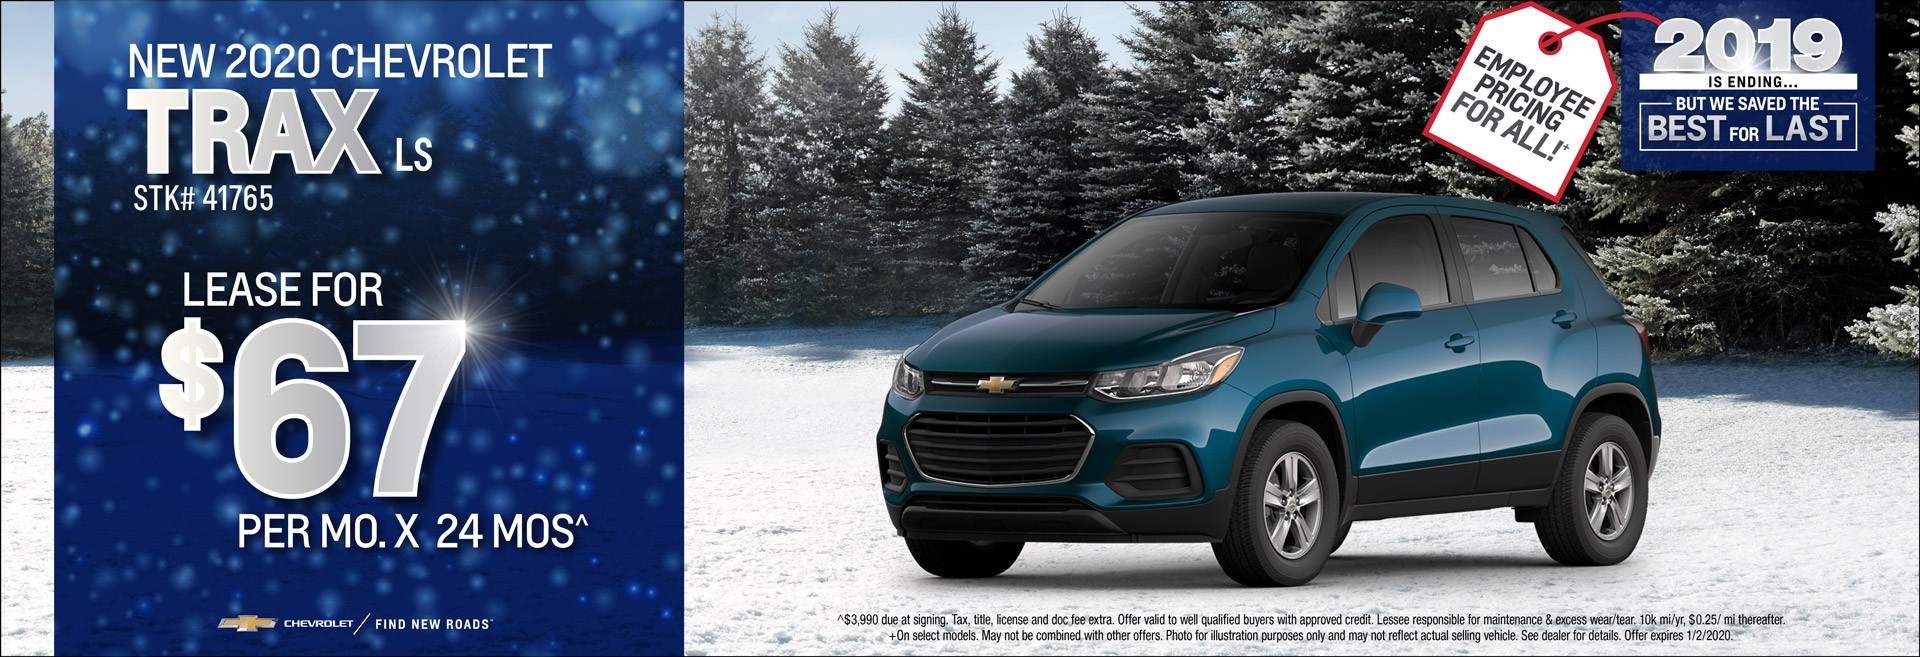 New 2020 Chevrolet Trax LS Lease for $67/mo x 24mos.